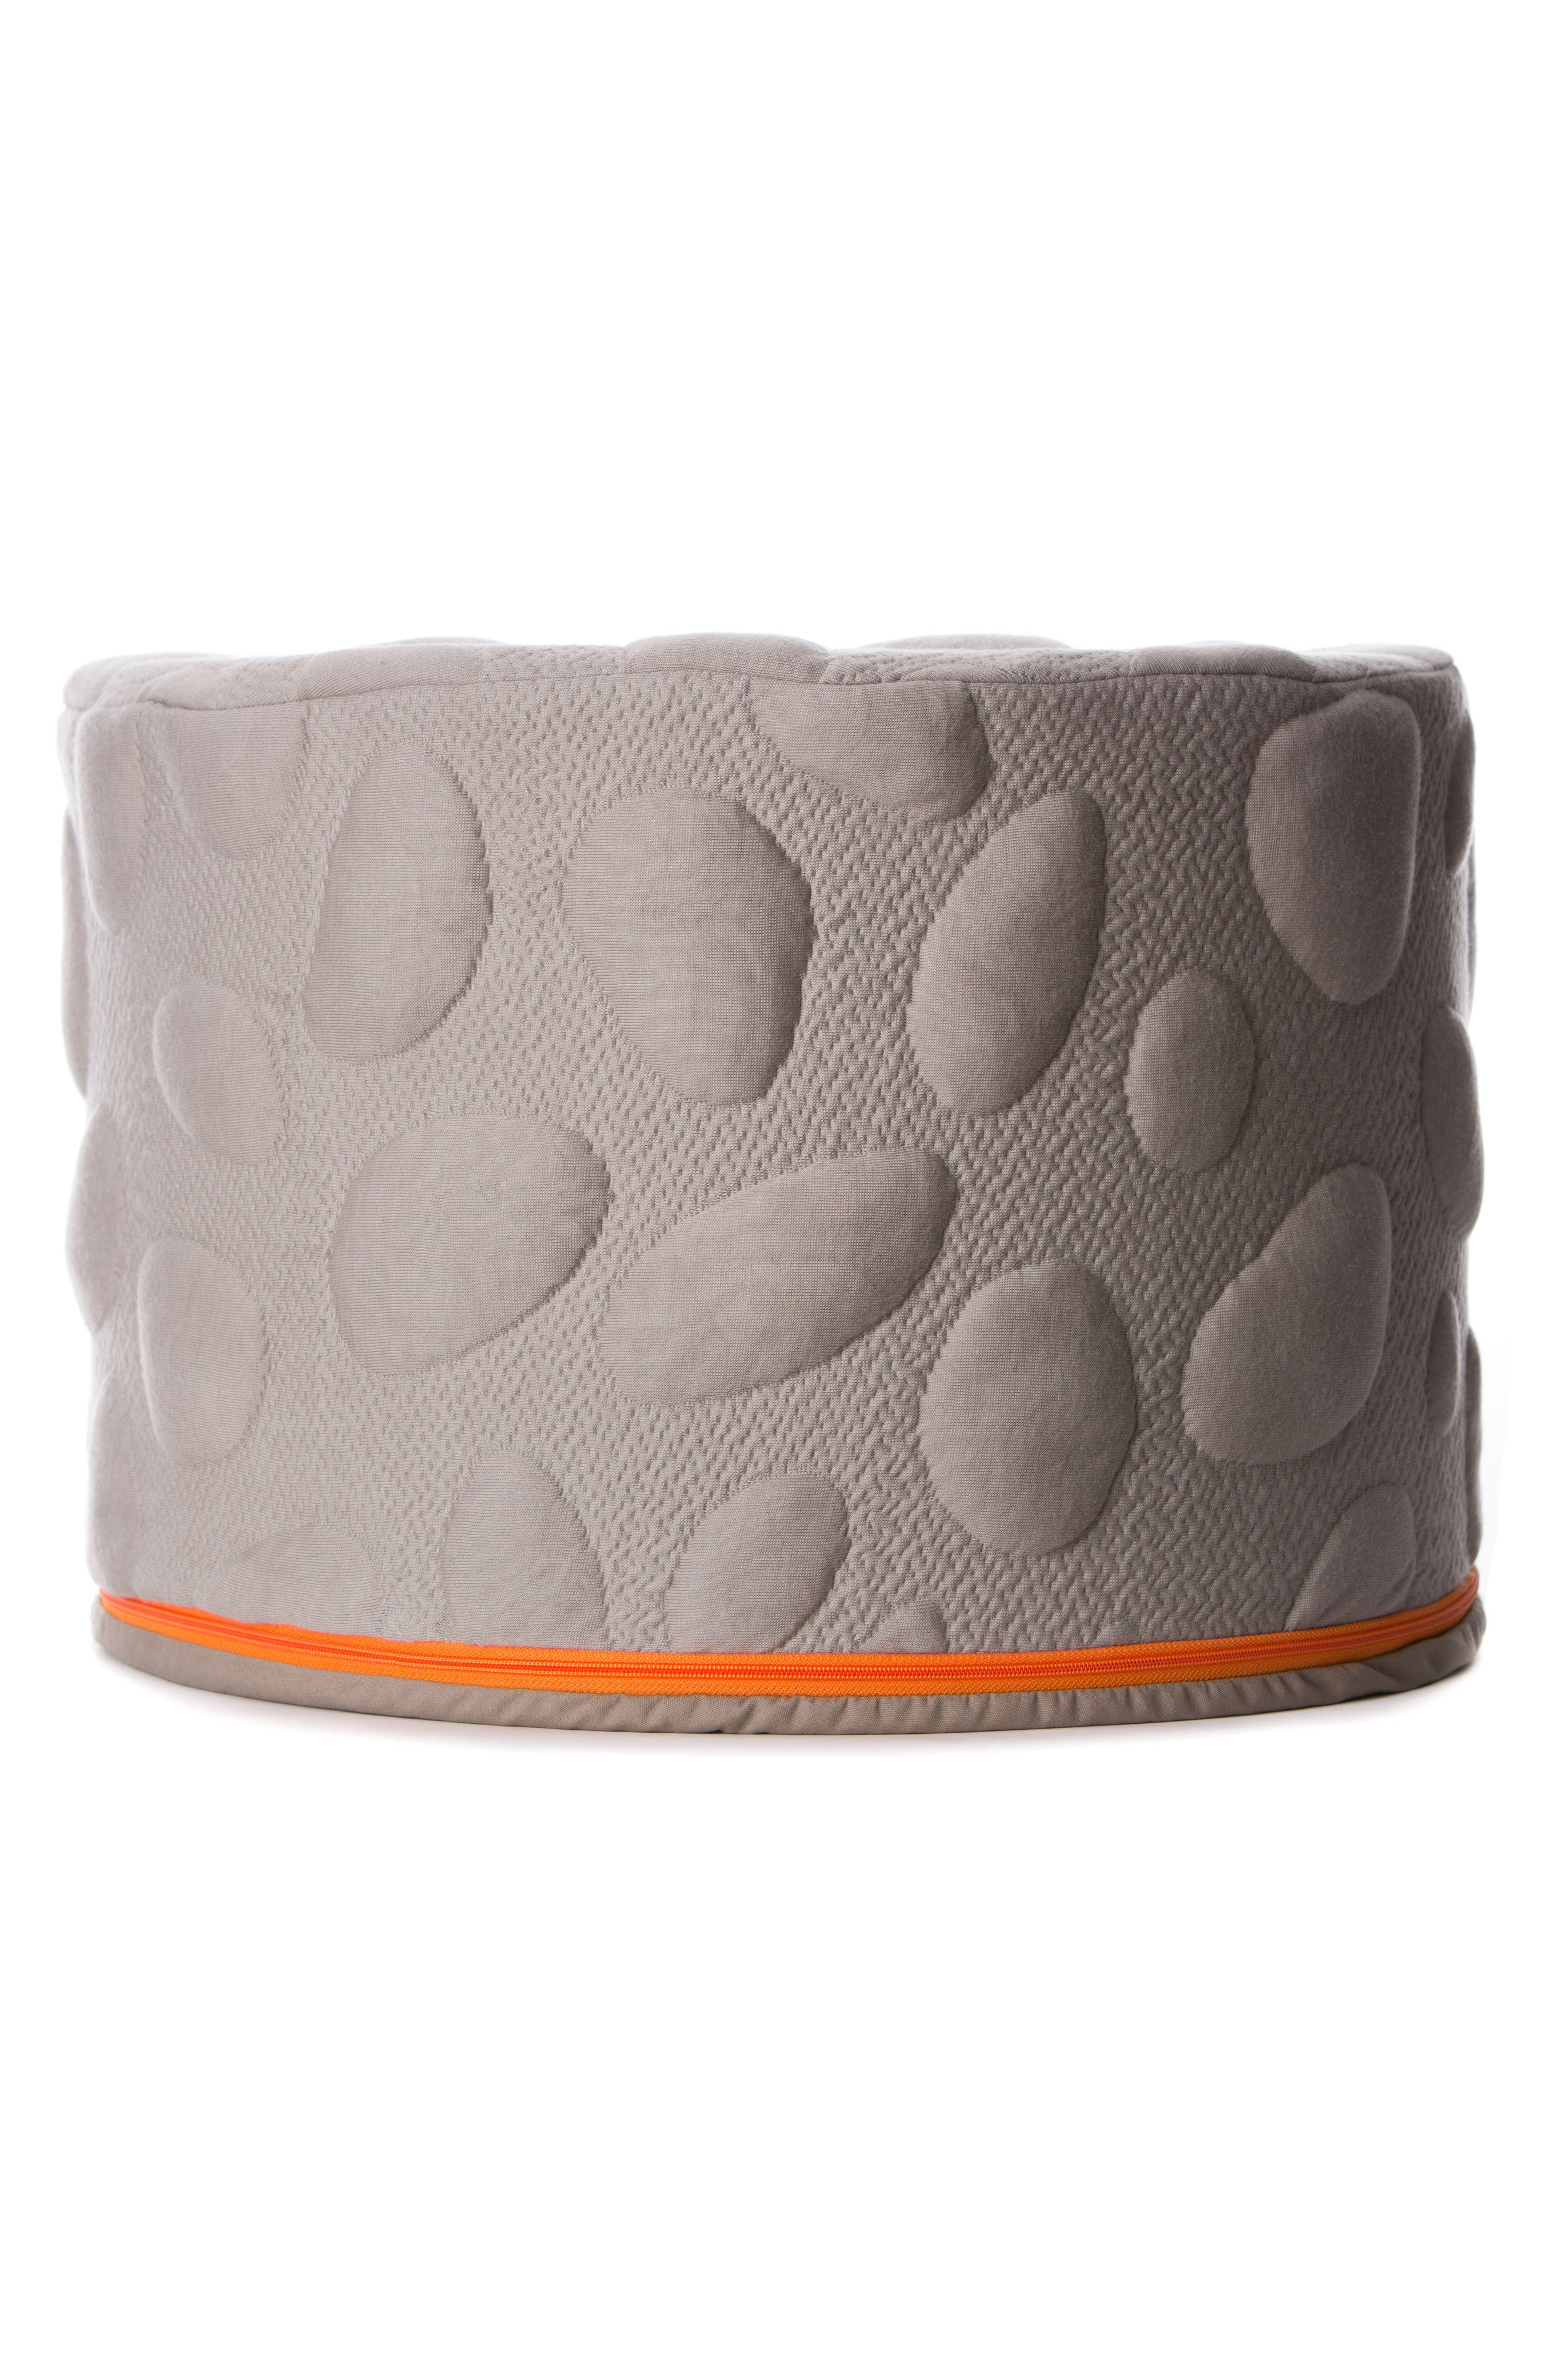 NOOK SLEEP SYSTEMS Pebble Pouf, Main, color, MISTY